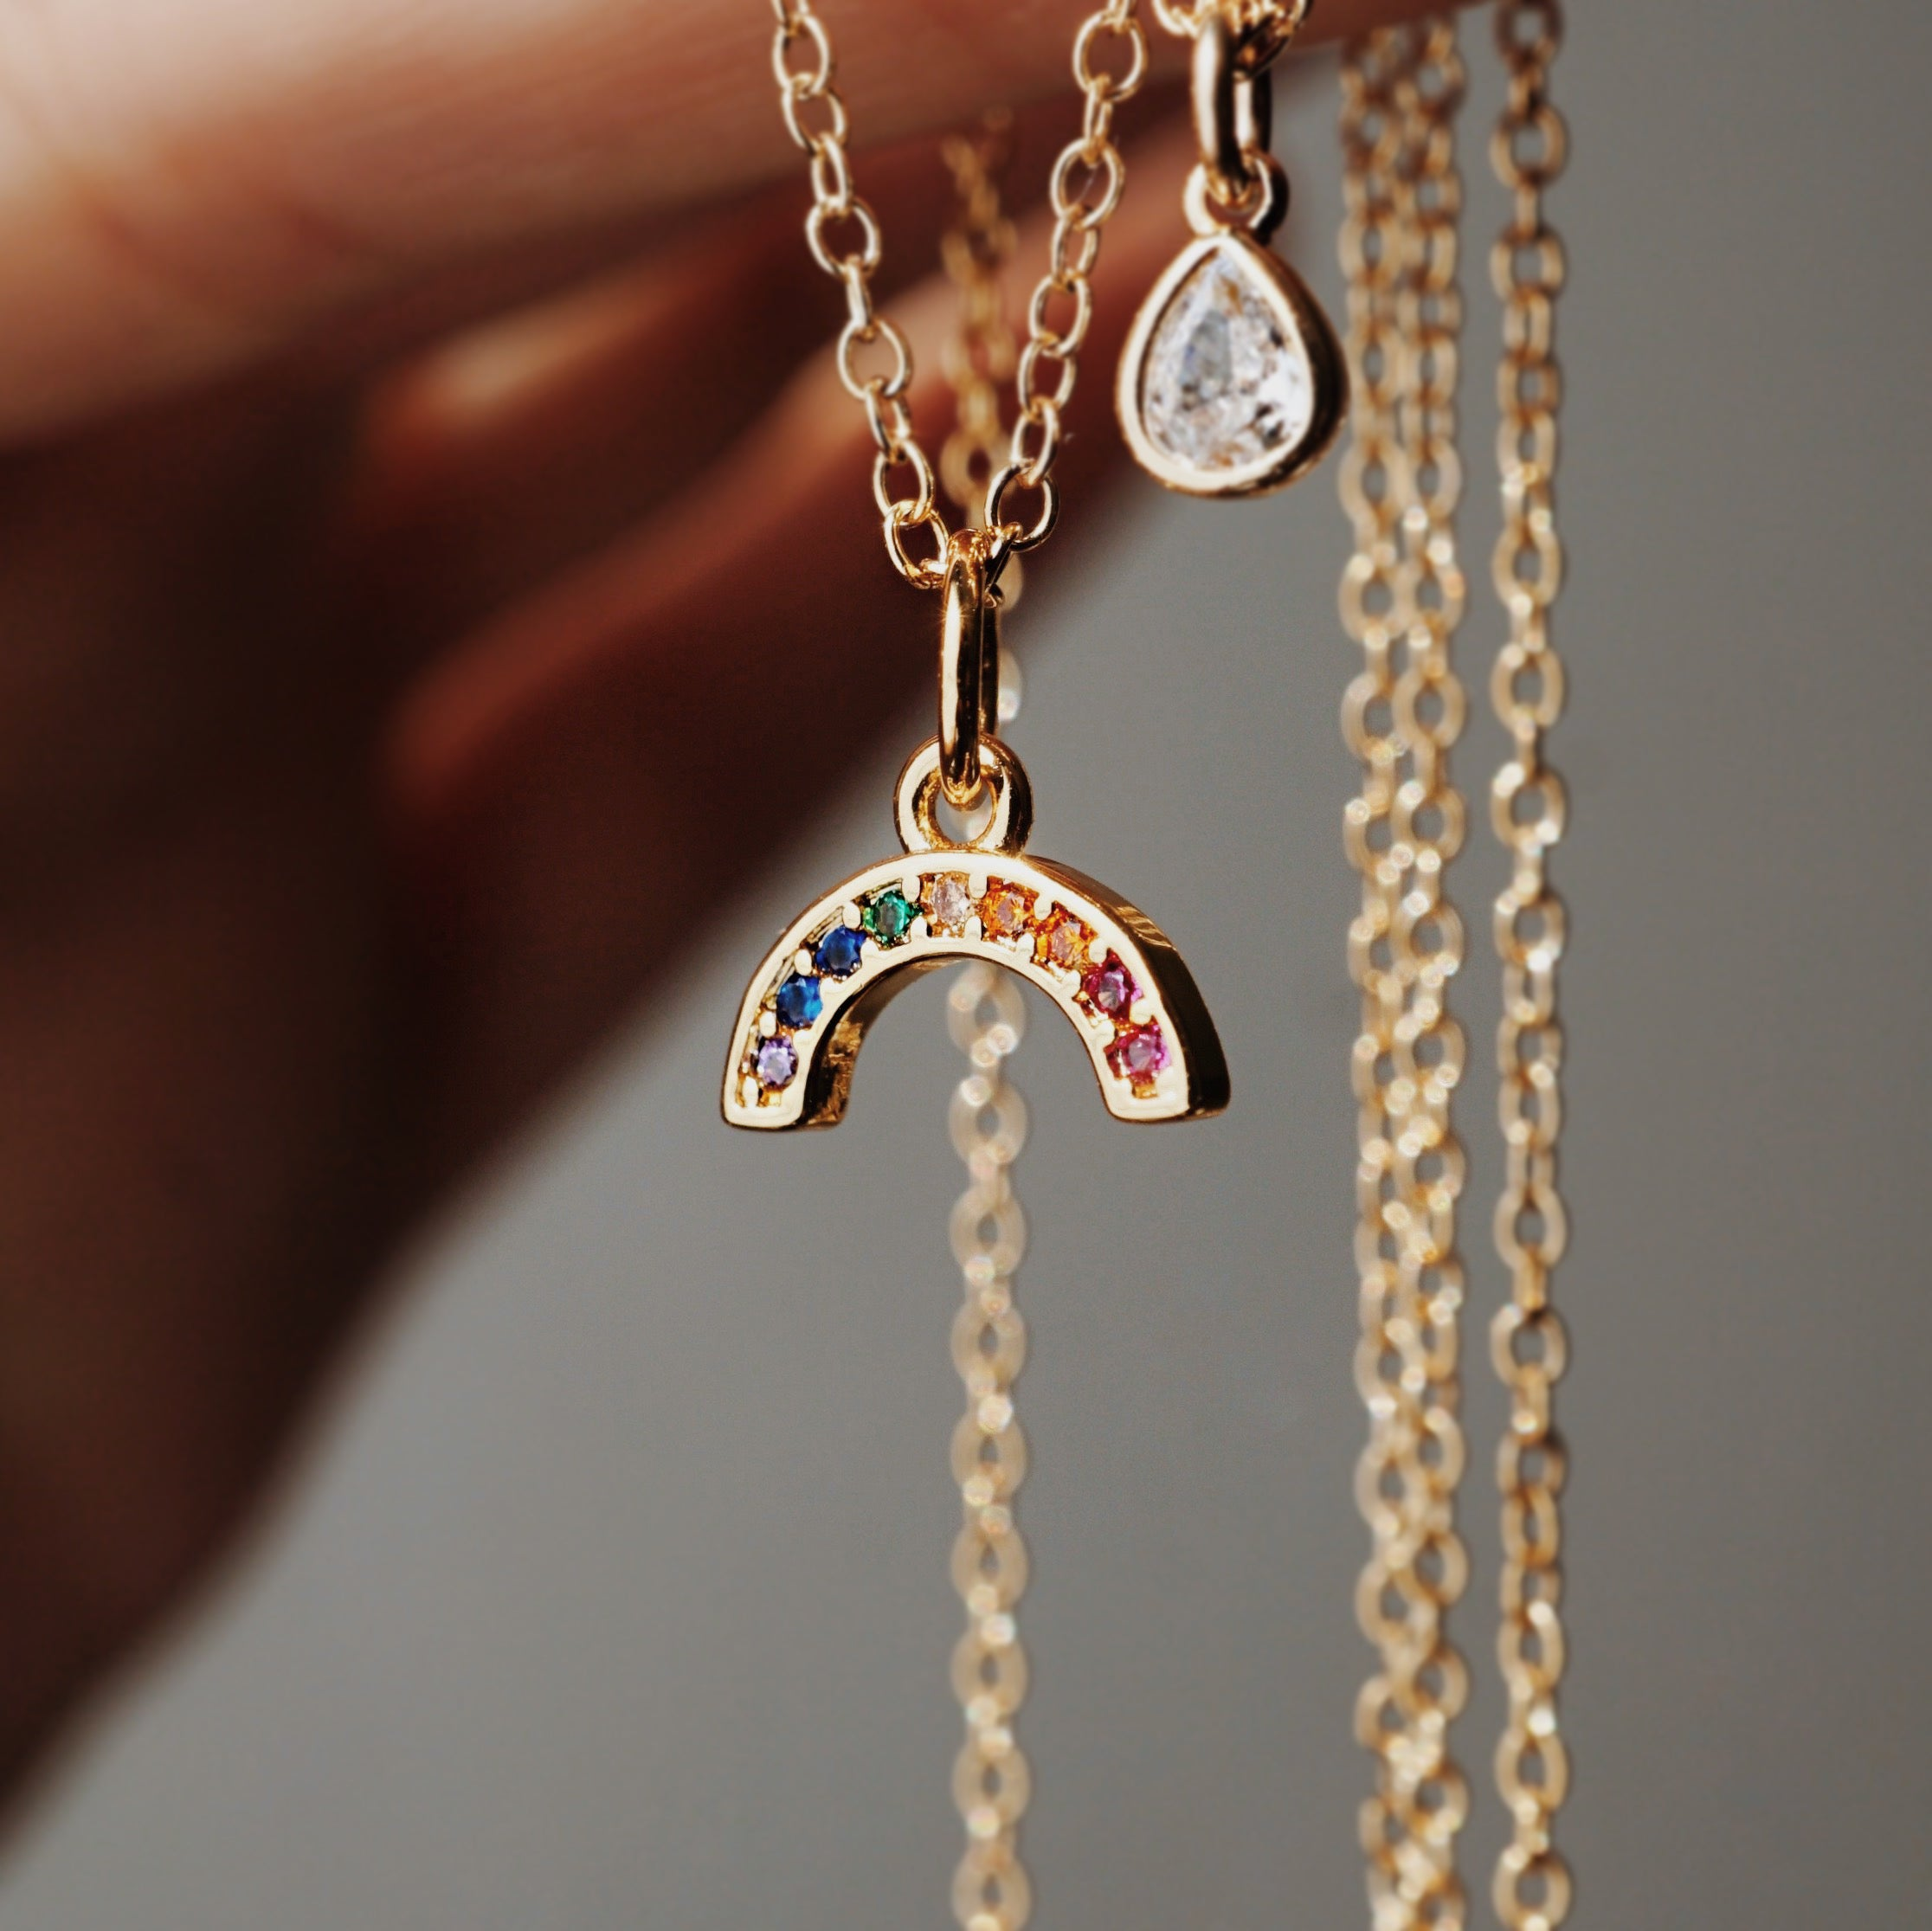 diamond rainbow necklace, rainbow baby, gods promise, aromatherapy